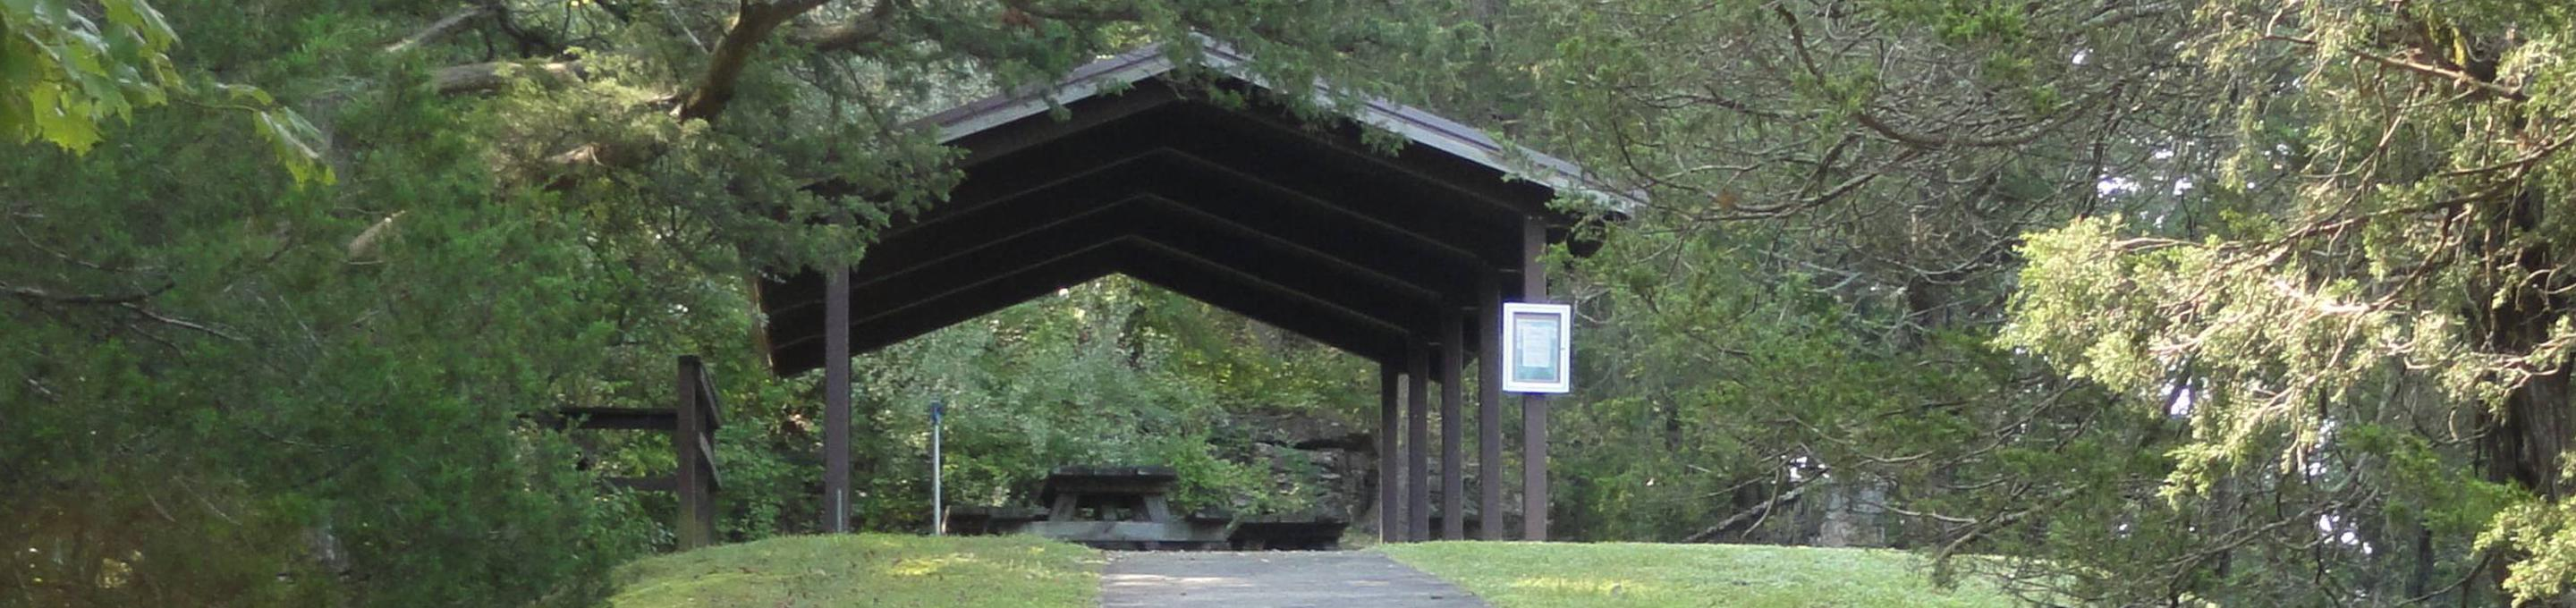 Pleasant Grove Day Use Area Shelter